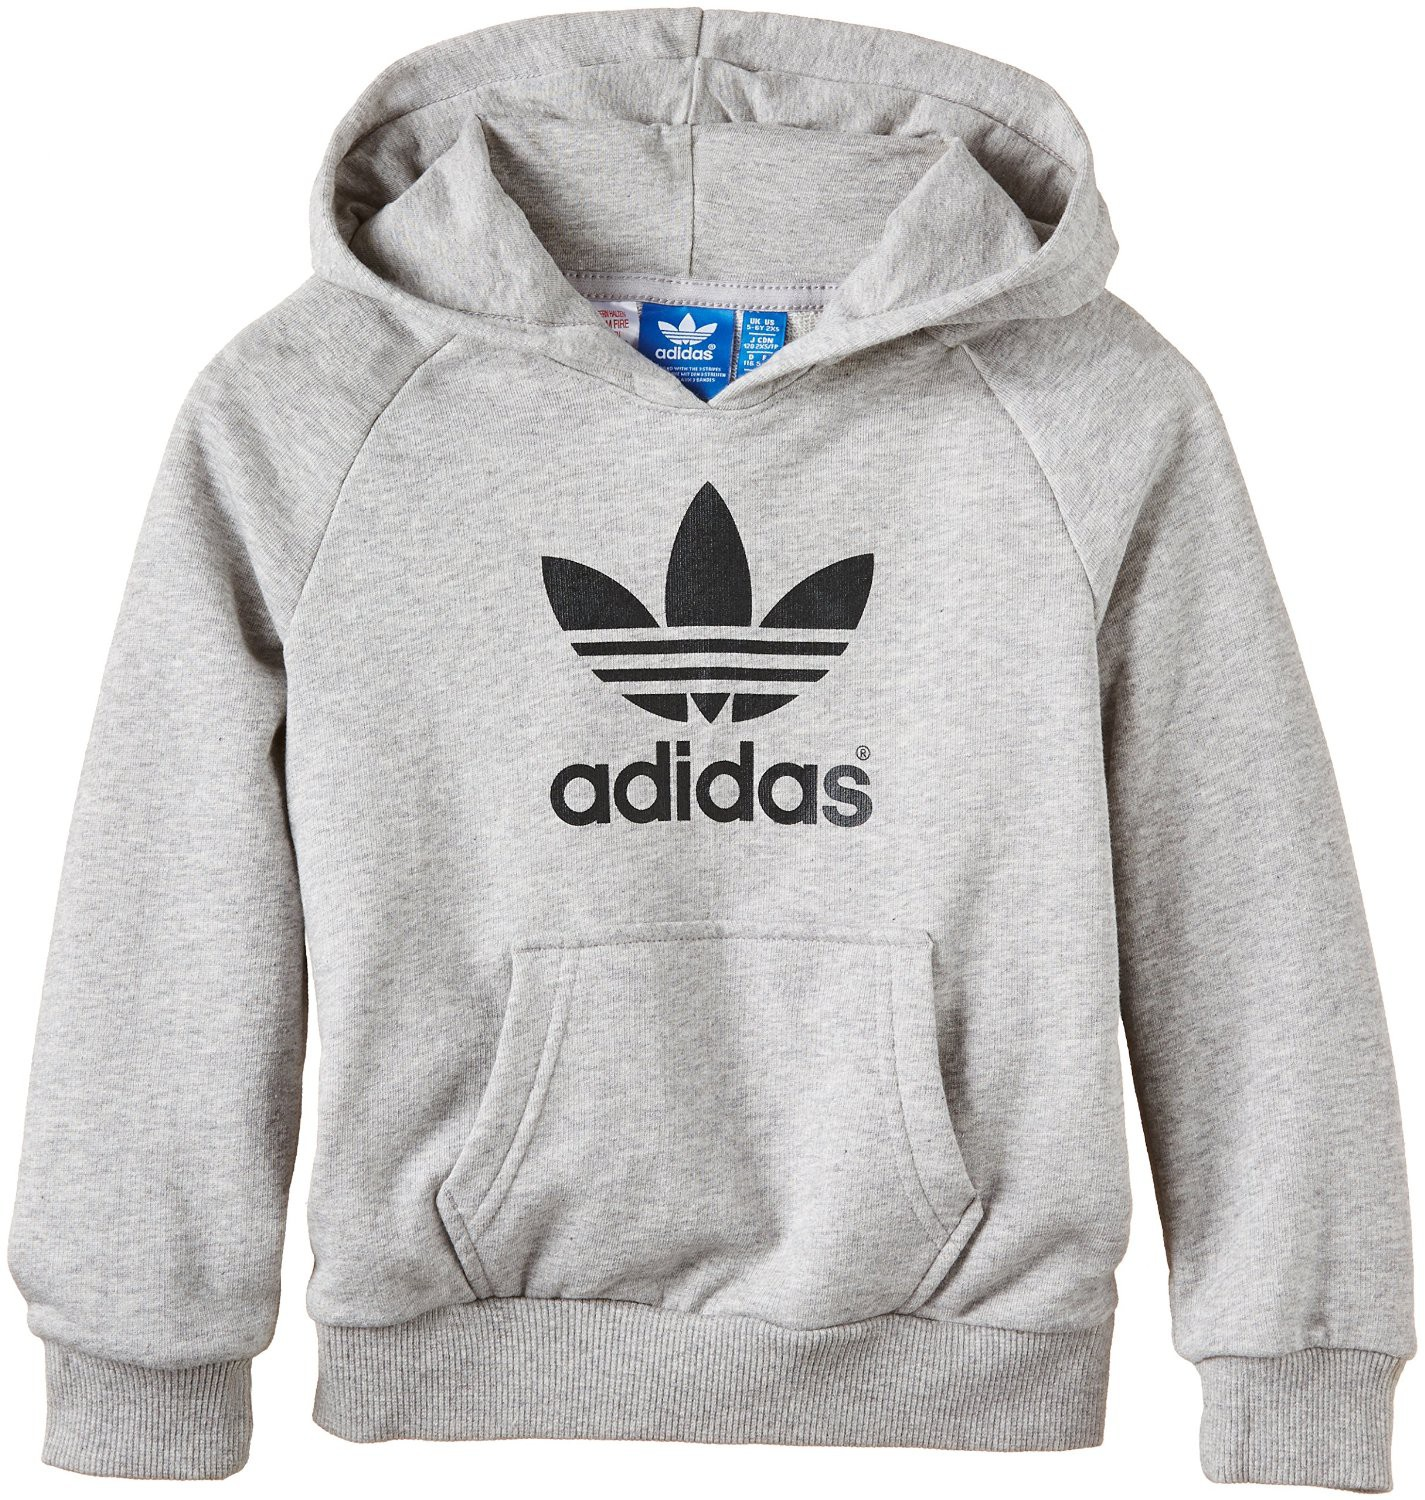 pullover jungs 164 adidas